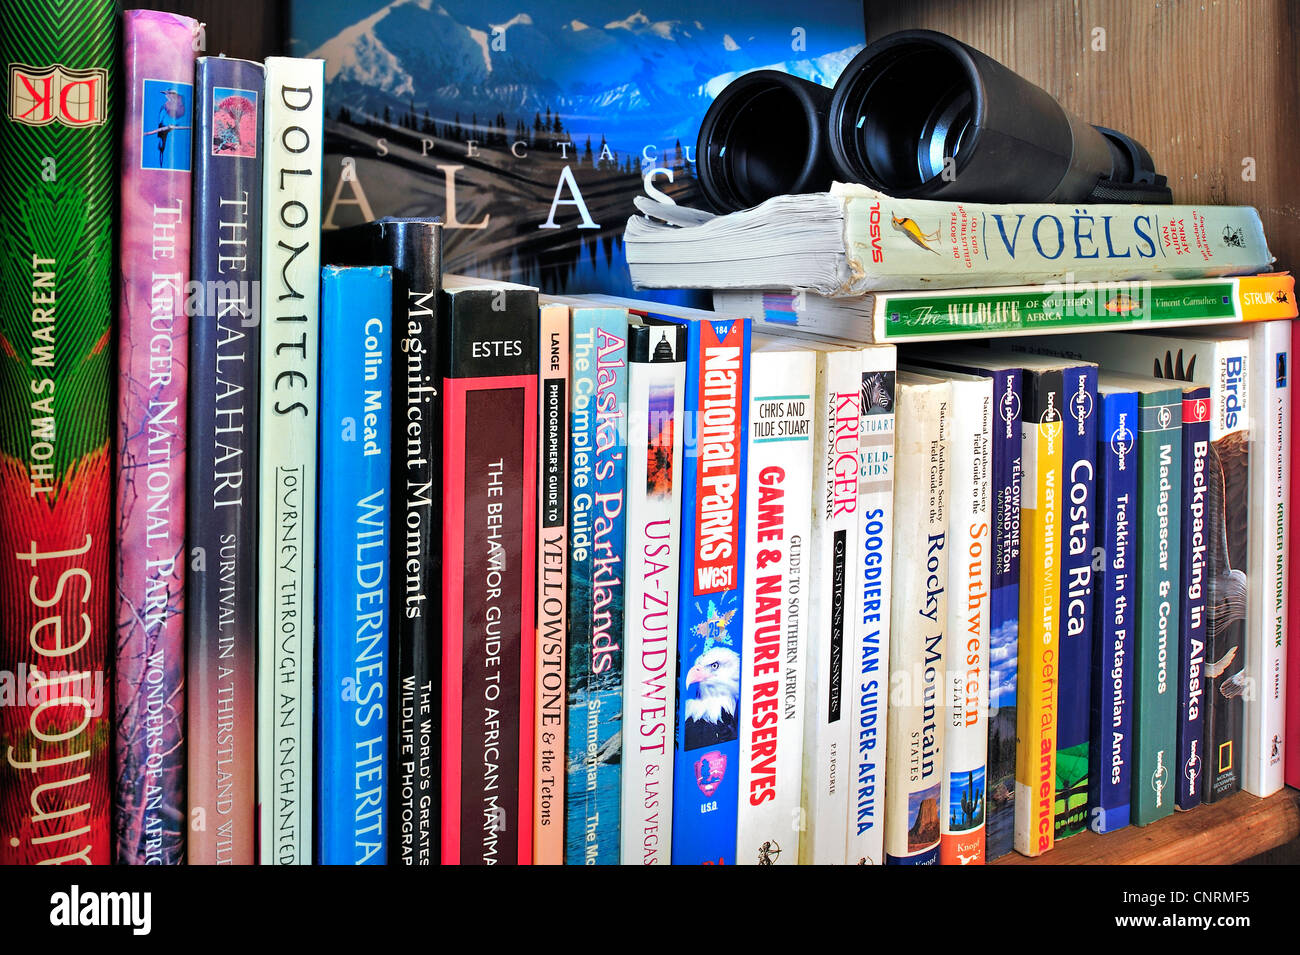 Collection showing assortment of travel guides and guidebooks about worldwide holiday destinations on a bookcase - Stock Image